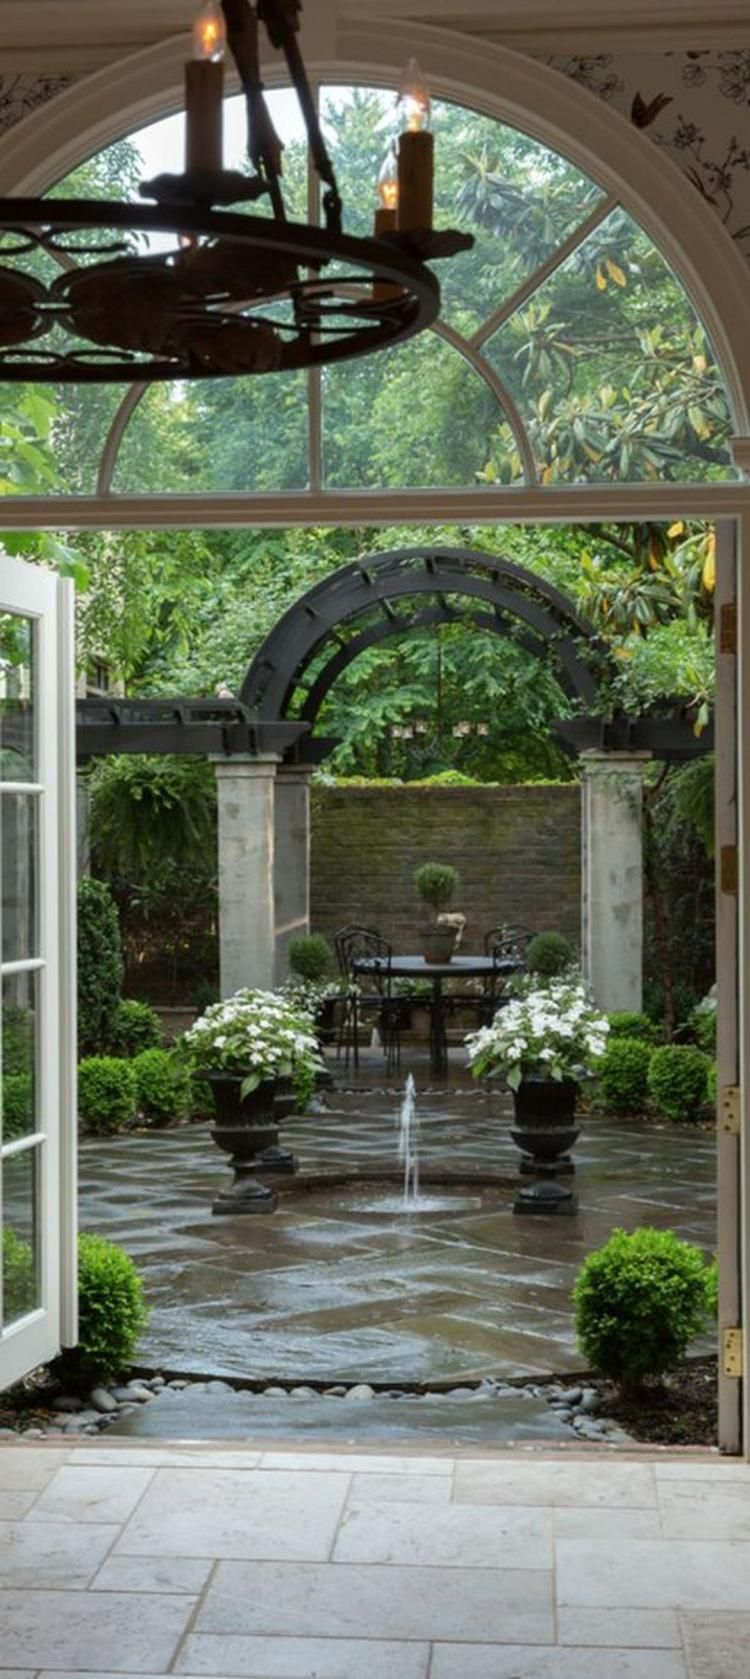 Gorgeous Small Courtyard ideas on A Budget | Garden ... on Courtyard Ideas On A Budget id=20803